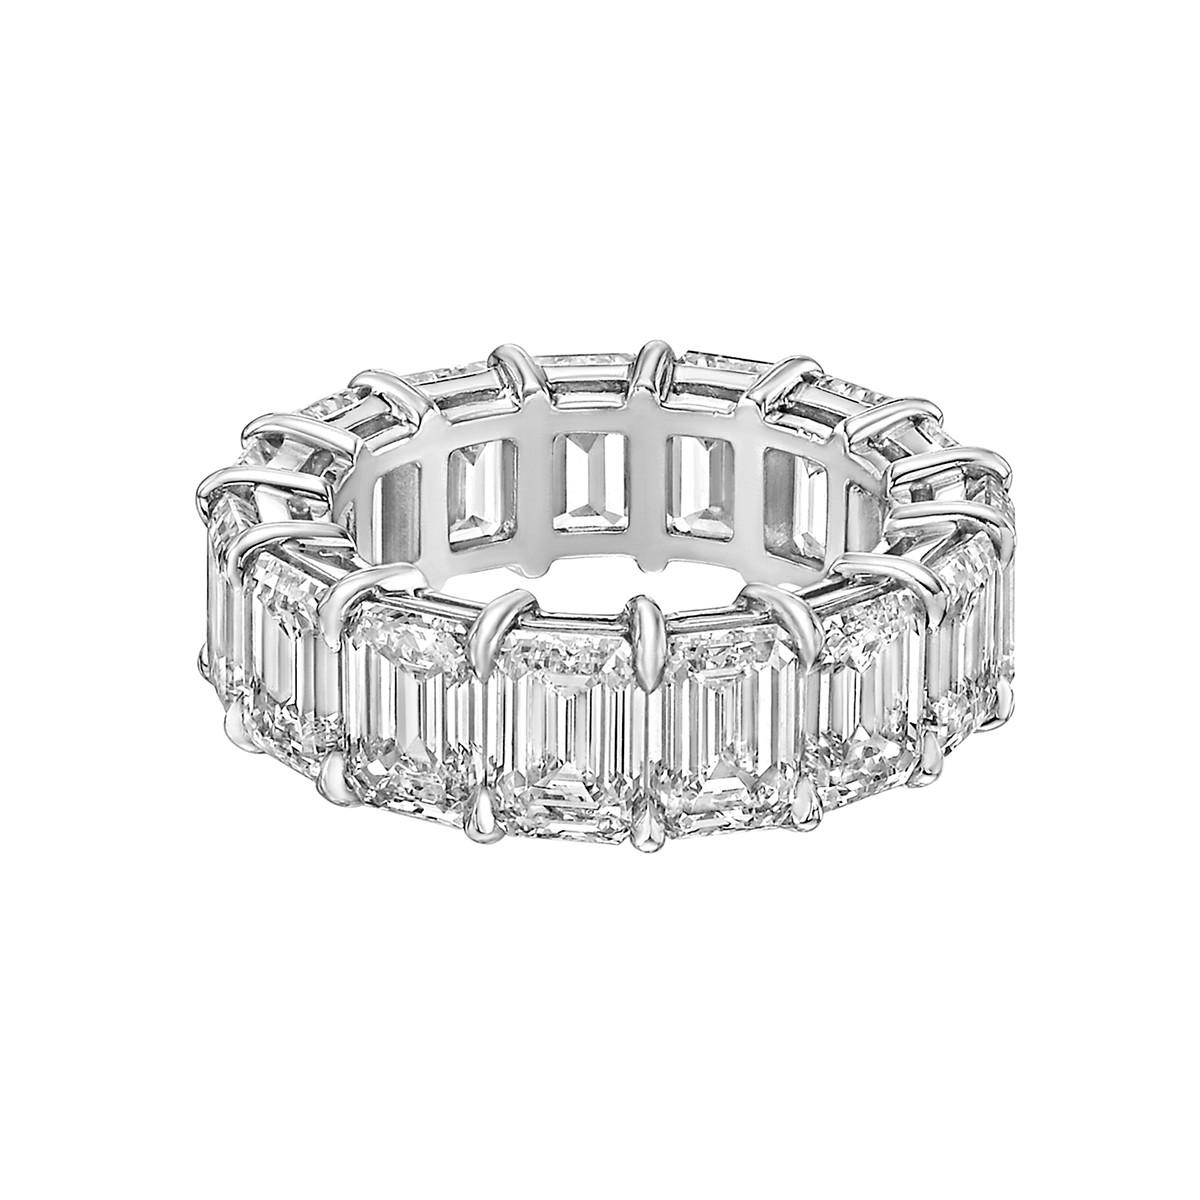 ring band bands engagement diamond carat price eternity